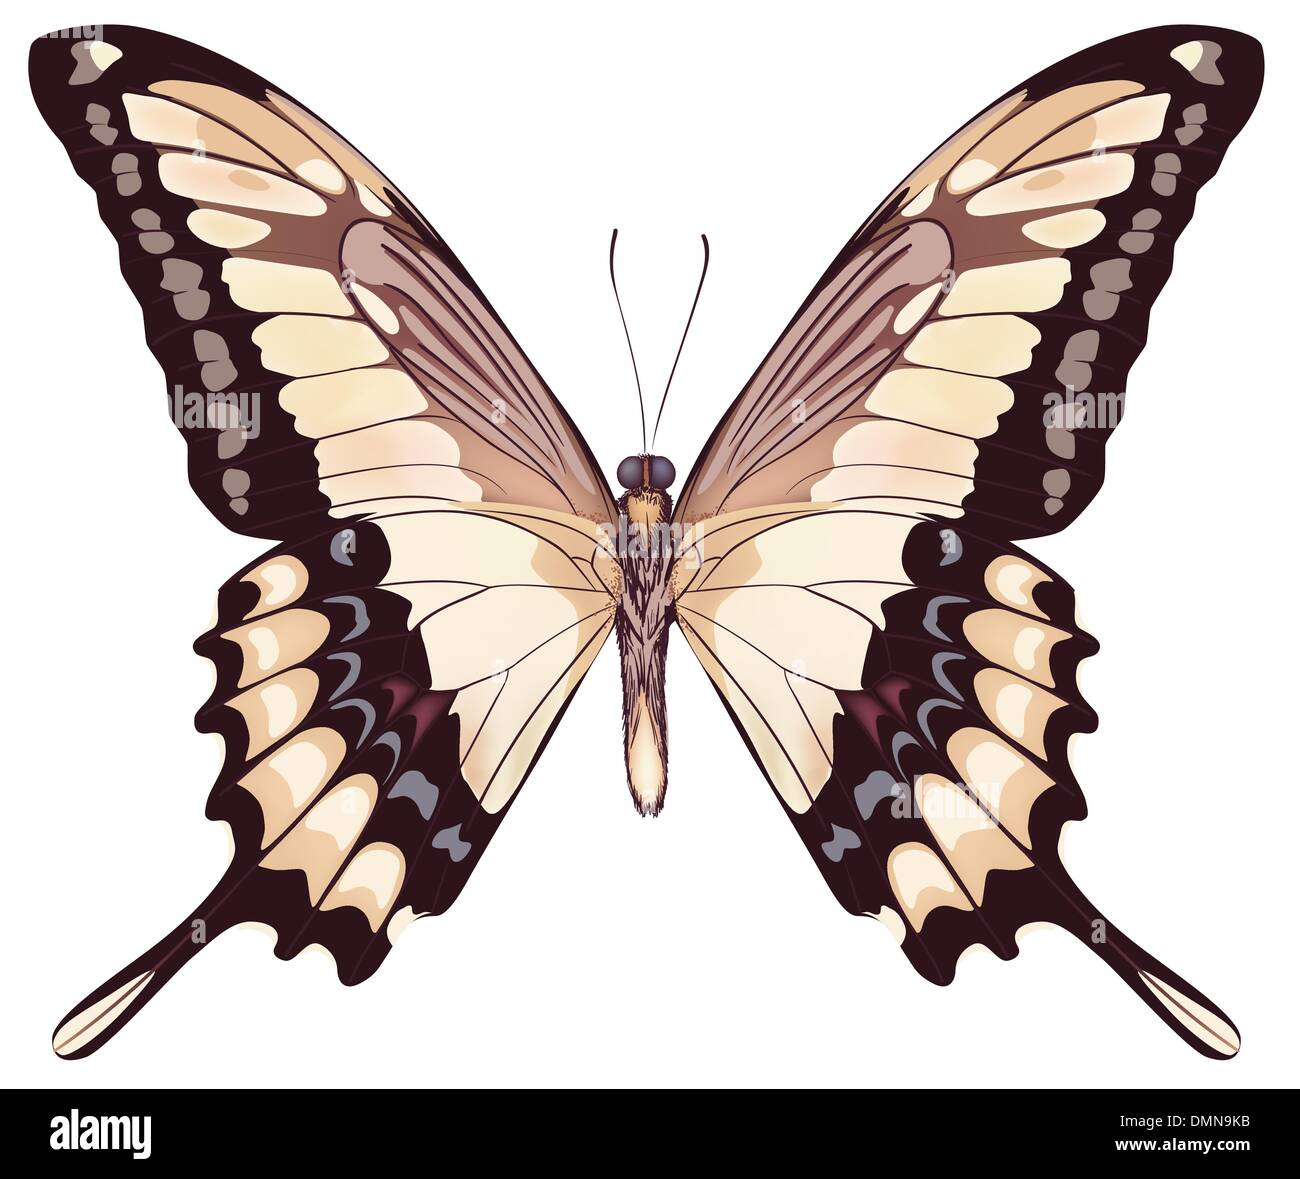 Isolated Light Butterfly VectorIllustration - Stock Image